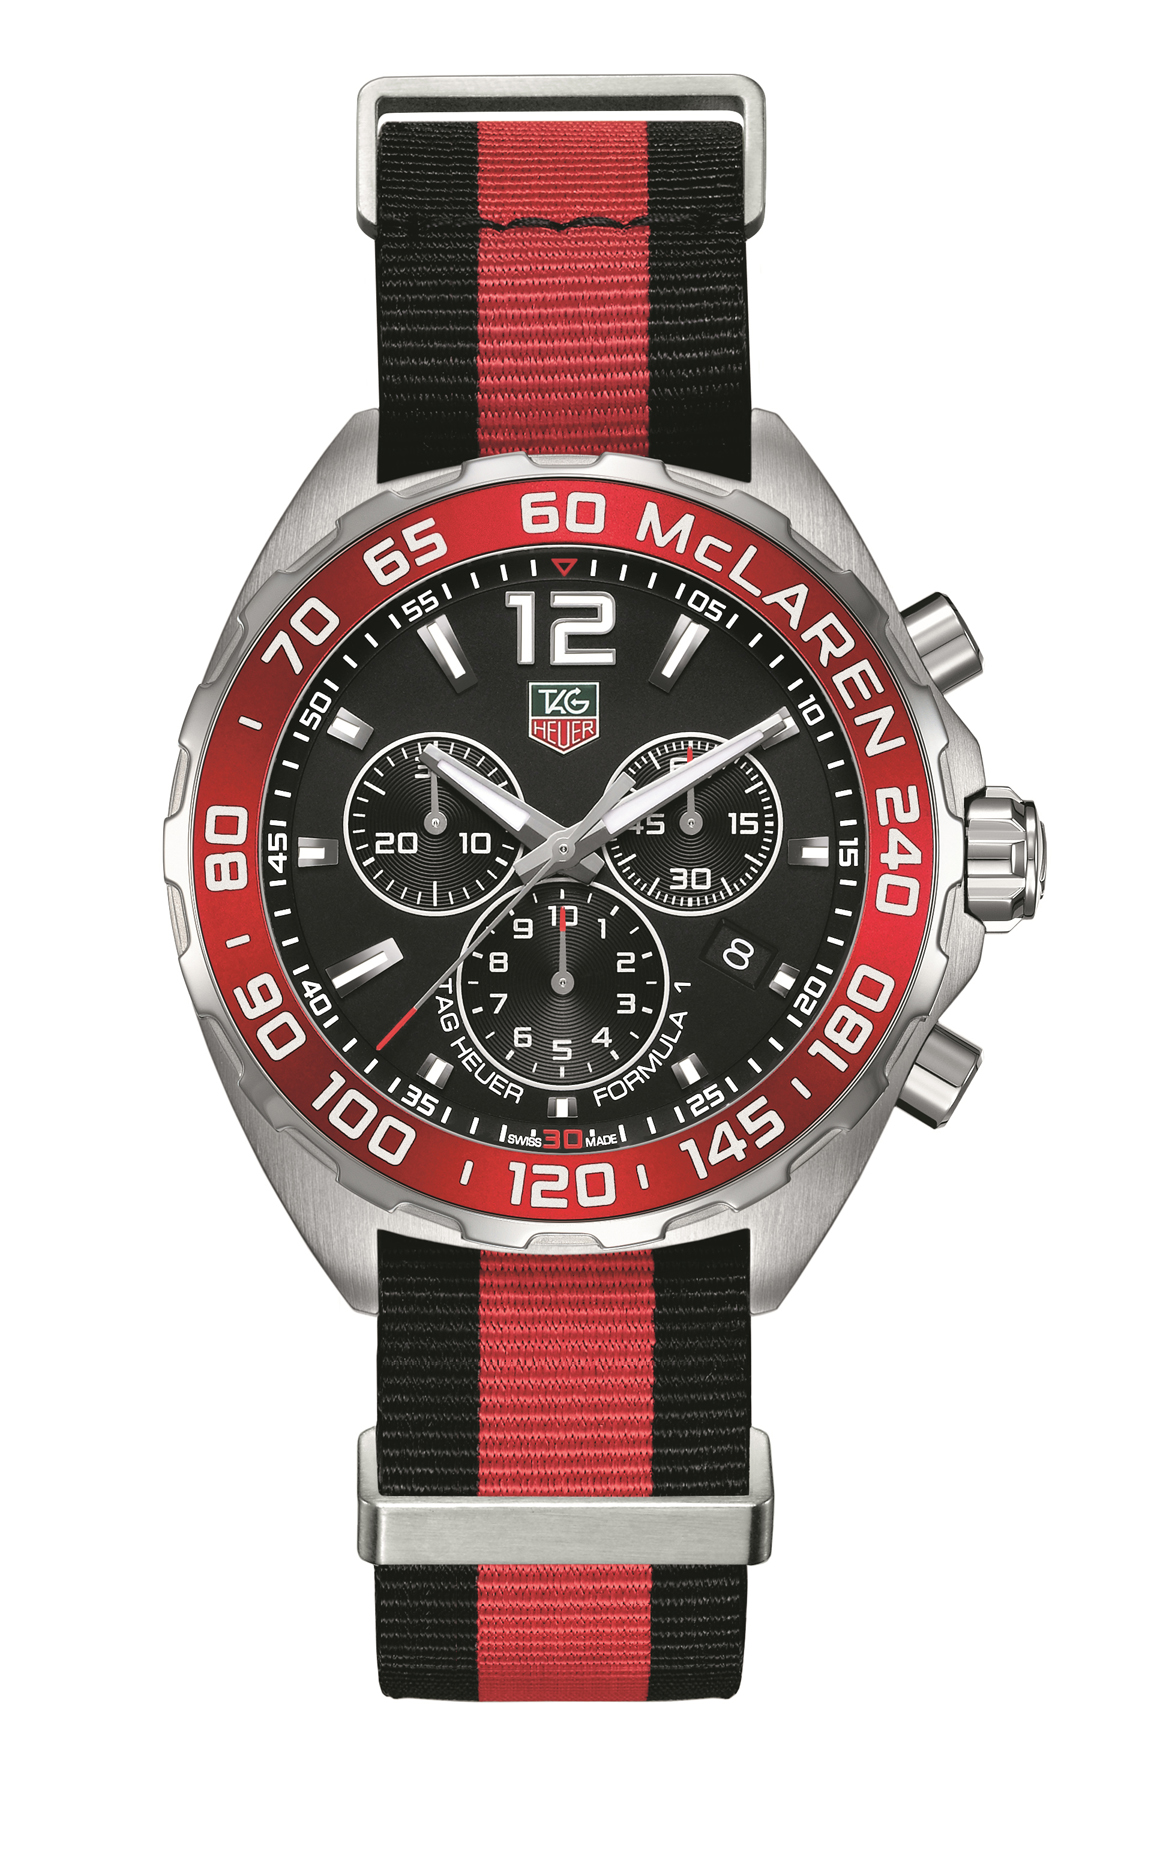 Limited Edition Birthday Collection: Tag Heuer And McLaren's Limited-edition Timepiece